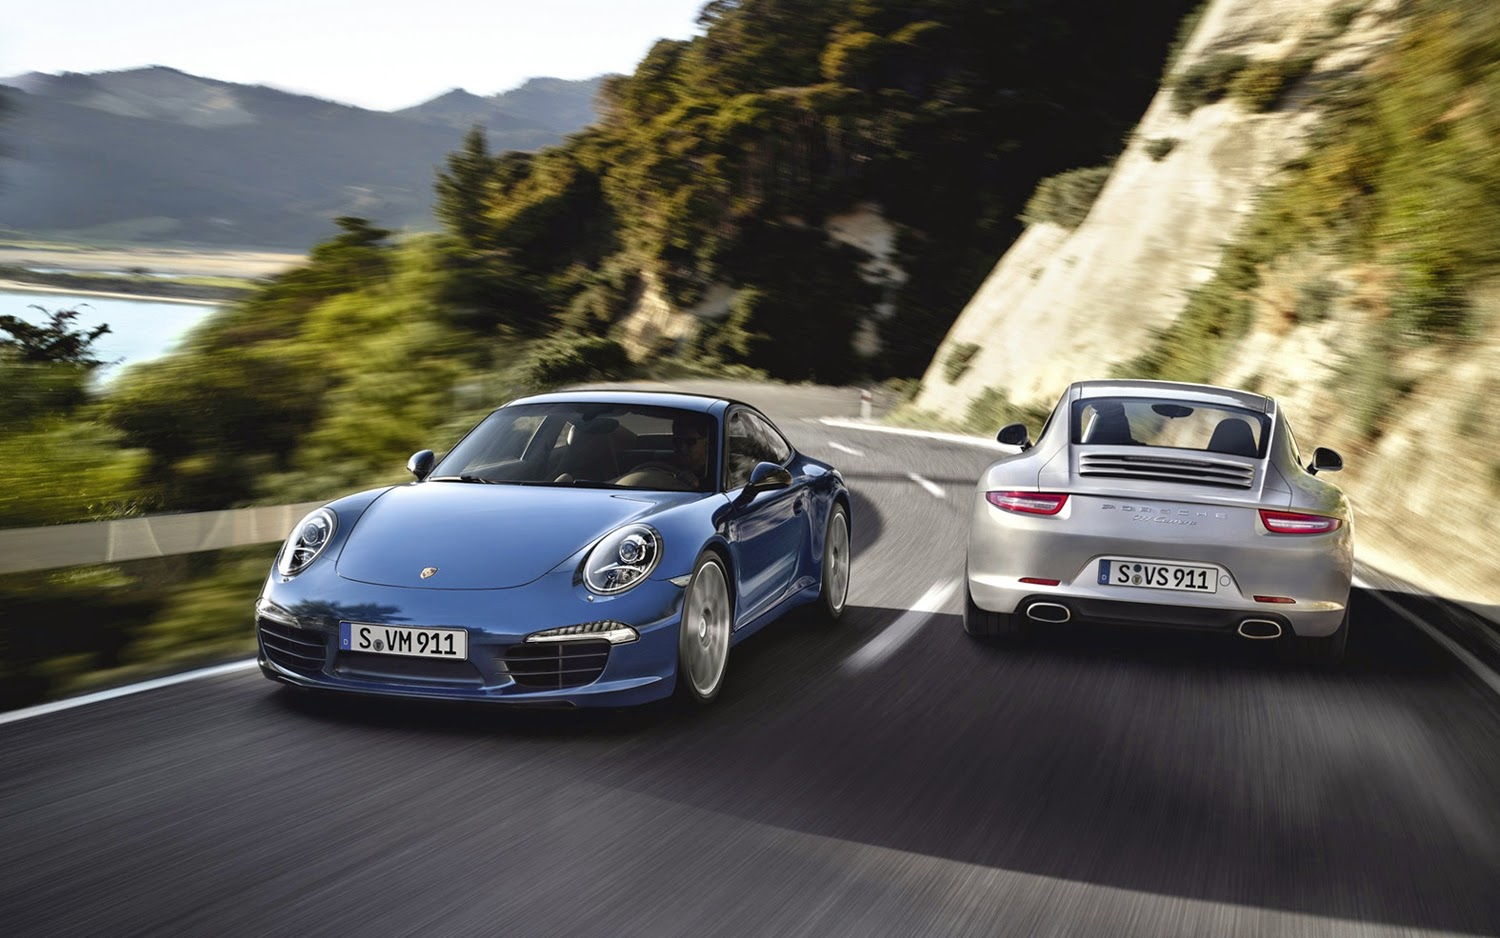 2016 Porsche 911 Turbo Specs, Design and price